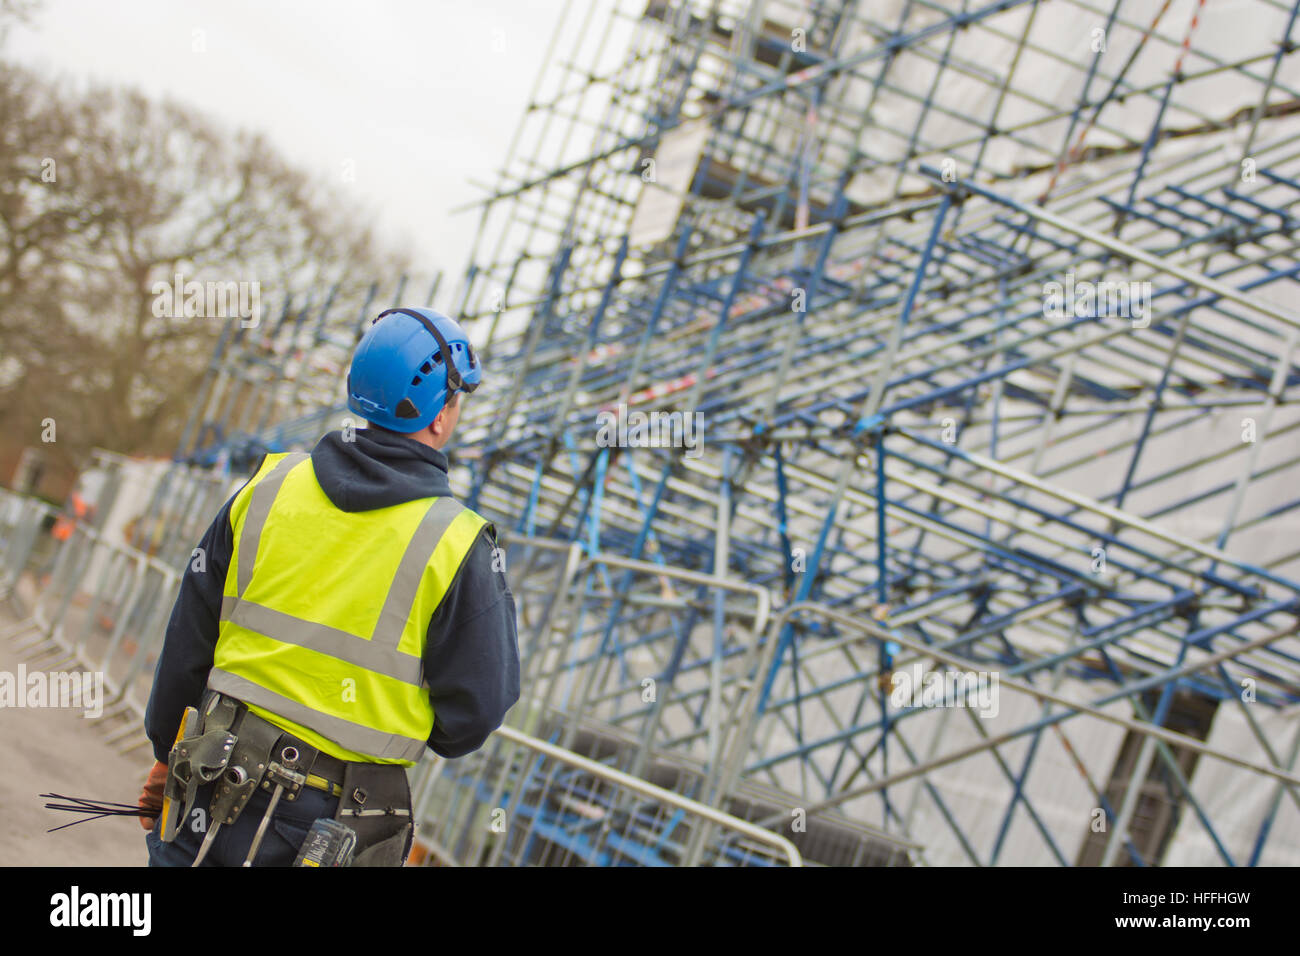 Construction supervisor looks up to scaffolding works at industrial construction site - Stock Image